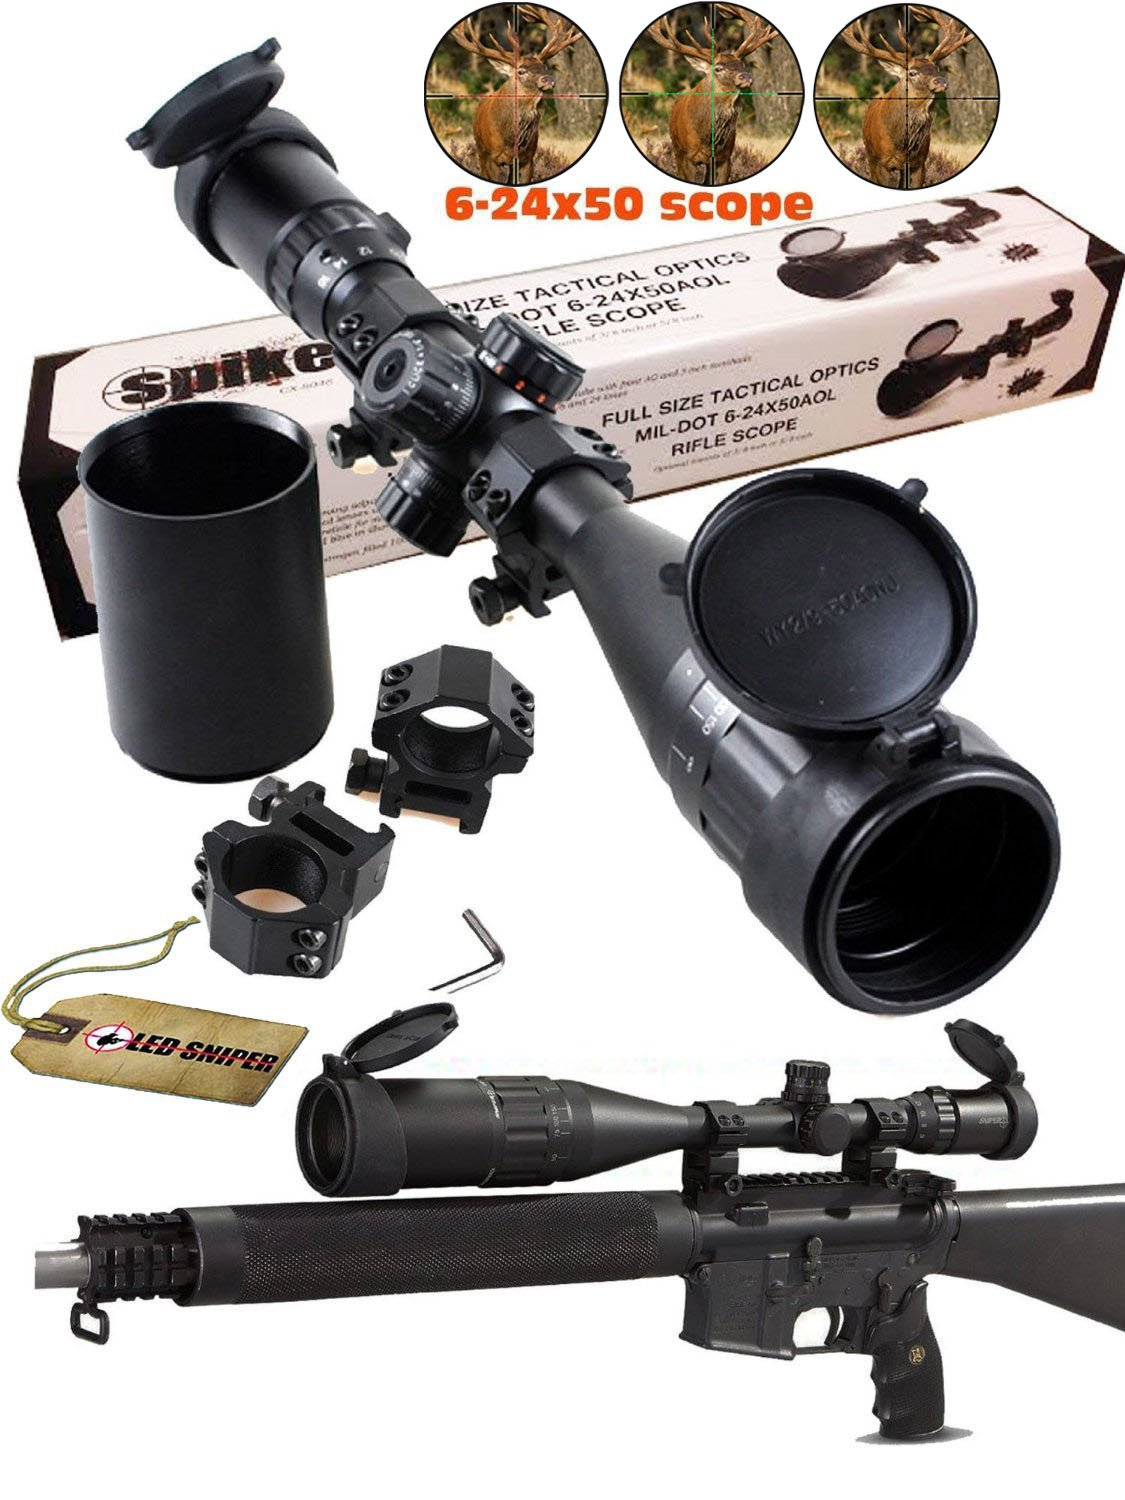 Ledsniper®riflescope 6-24 x 50 AOE Red & Green & Blue Illuminated Adjustable Intensified Rifle Scope